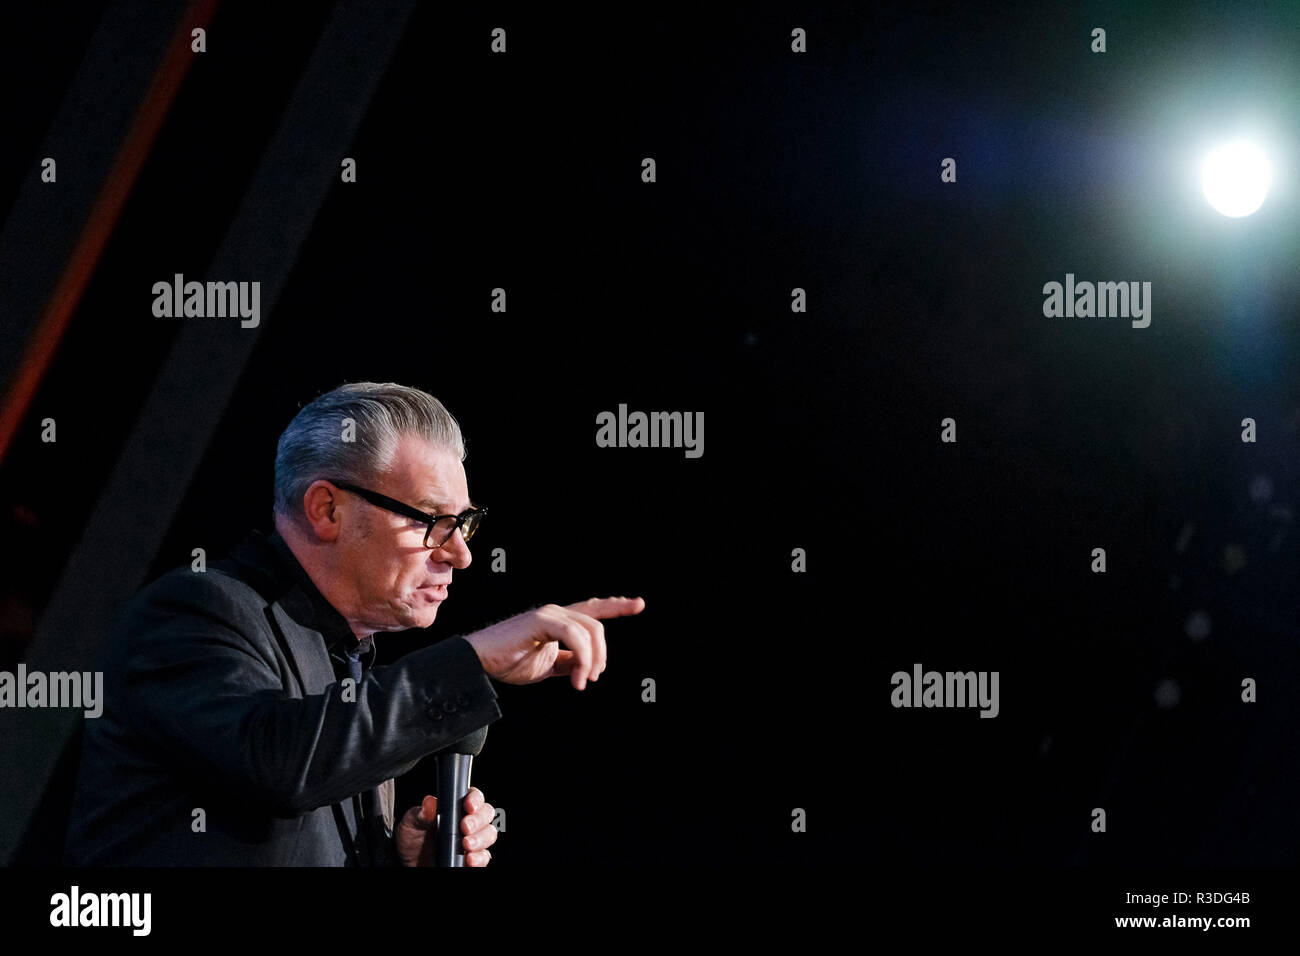 Mark Kermode appears on Mark Kermode Live in 3D on Monday 19 November 2018 held at BFI Southbank, London. Pictured: Mark Kermode. - Stock Image